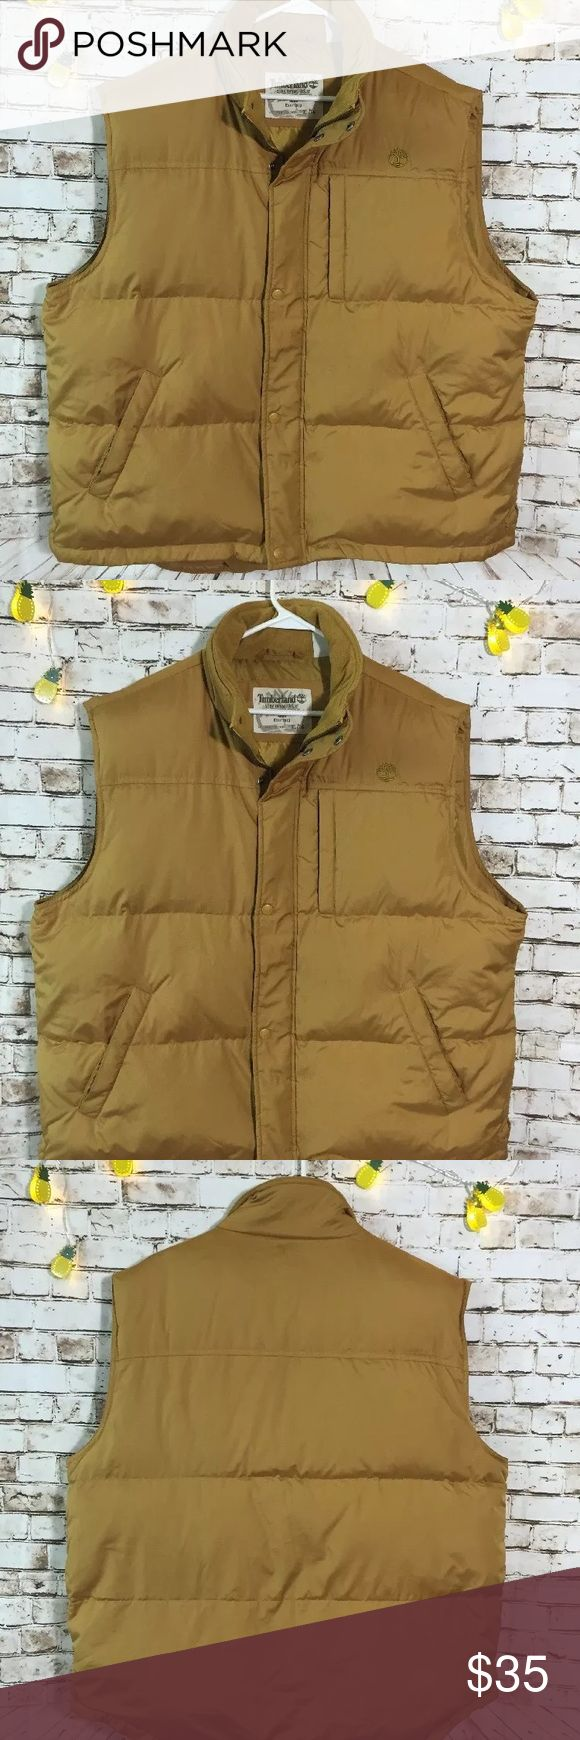 "Timberland XL stratham puffer vest jacket In excellent condition!! 28"" chest measurements Timberland Jackets & Coats Vests"